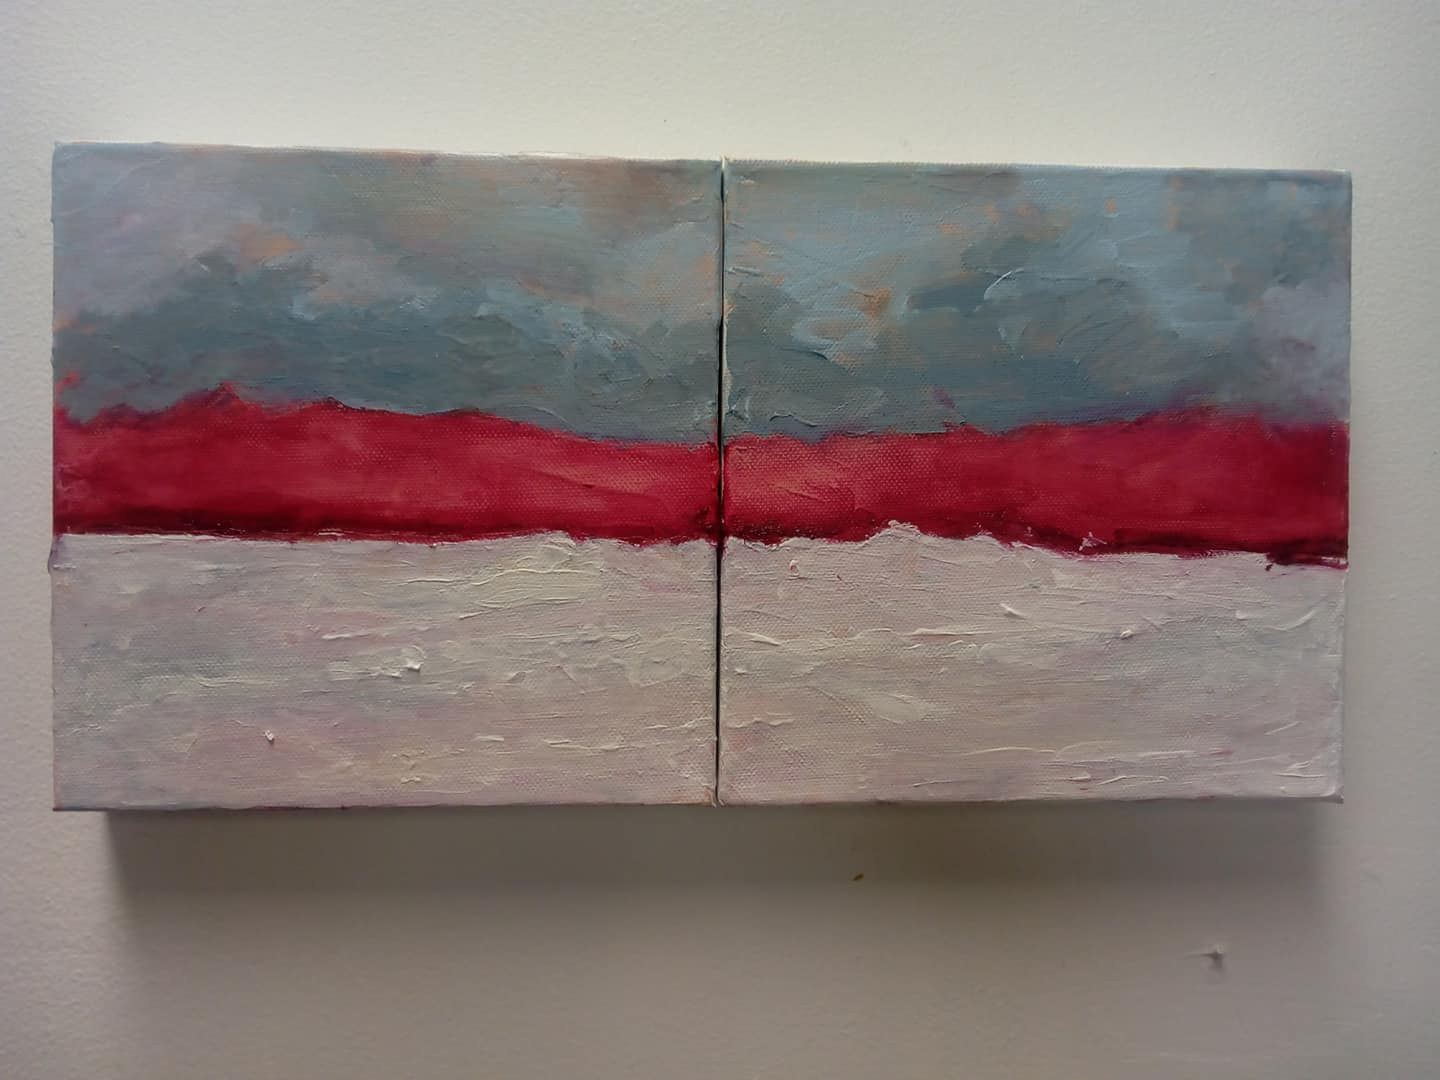 Paintings   Declan Cody and Olivia O'Dwyer at Wexford Creative Hub Artist Studios, Wexford